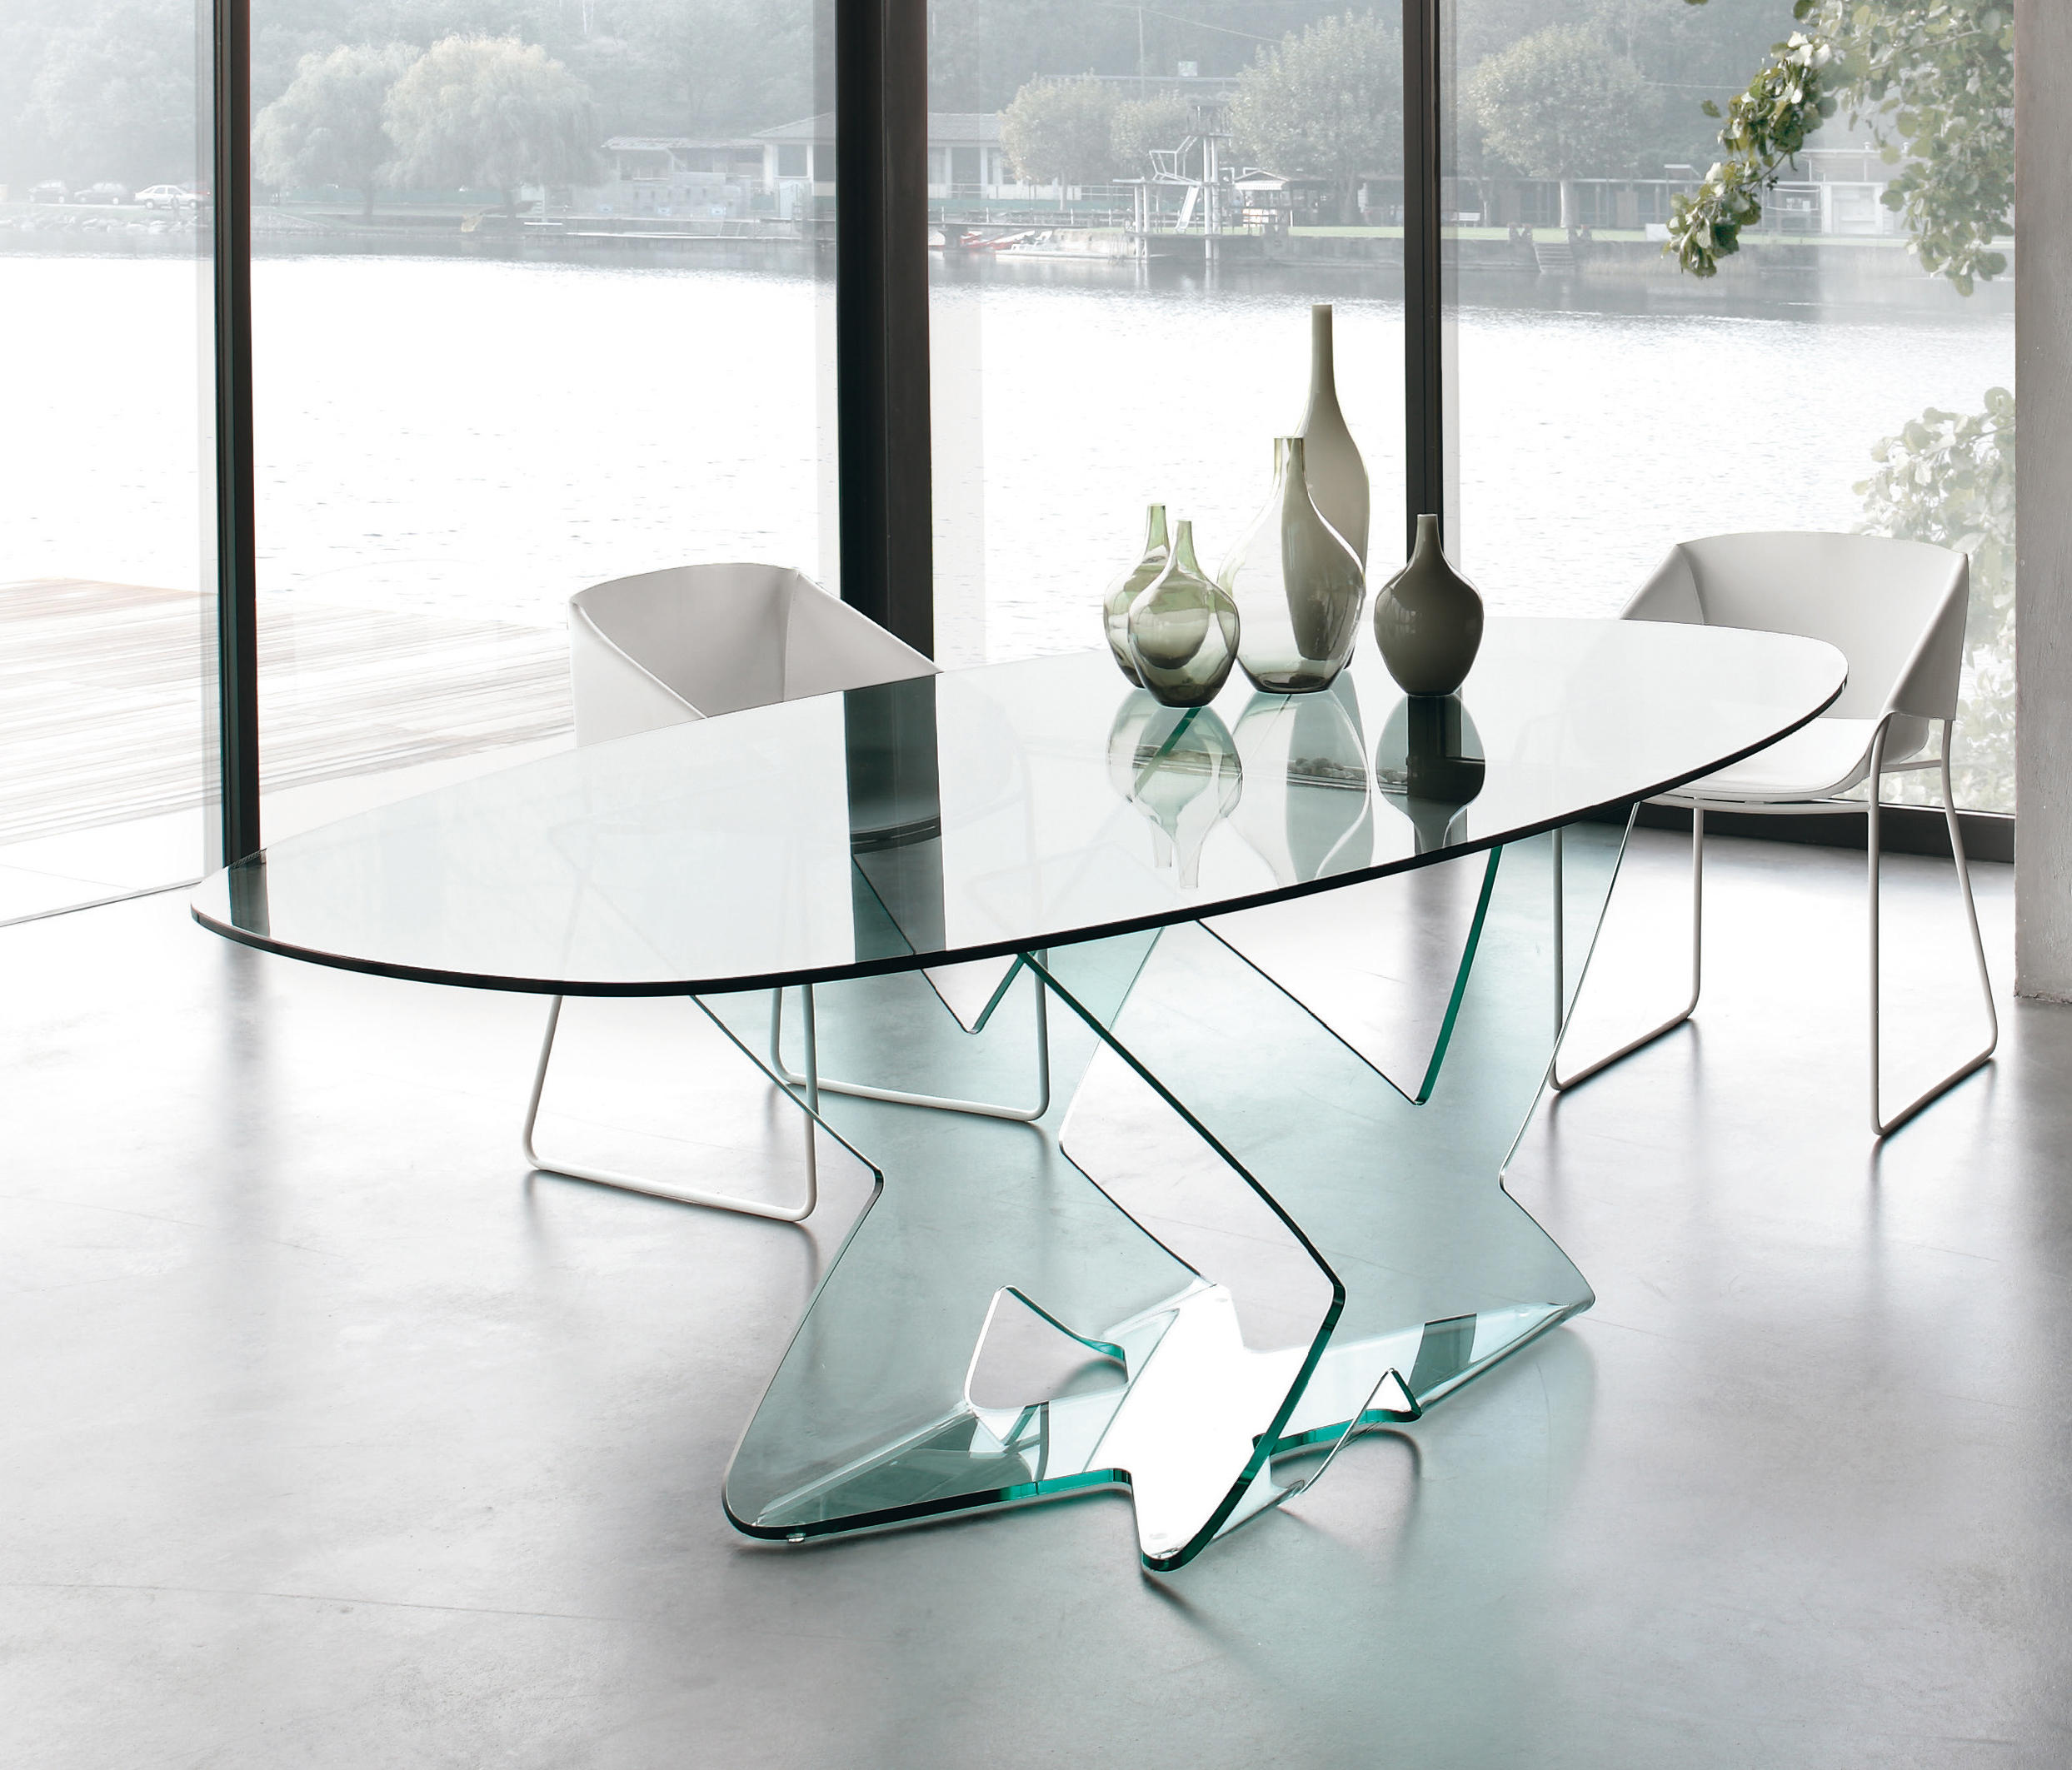 ghost  dining tables from tonin casa  architonic - ghost by tonin casa  dining tables